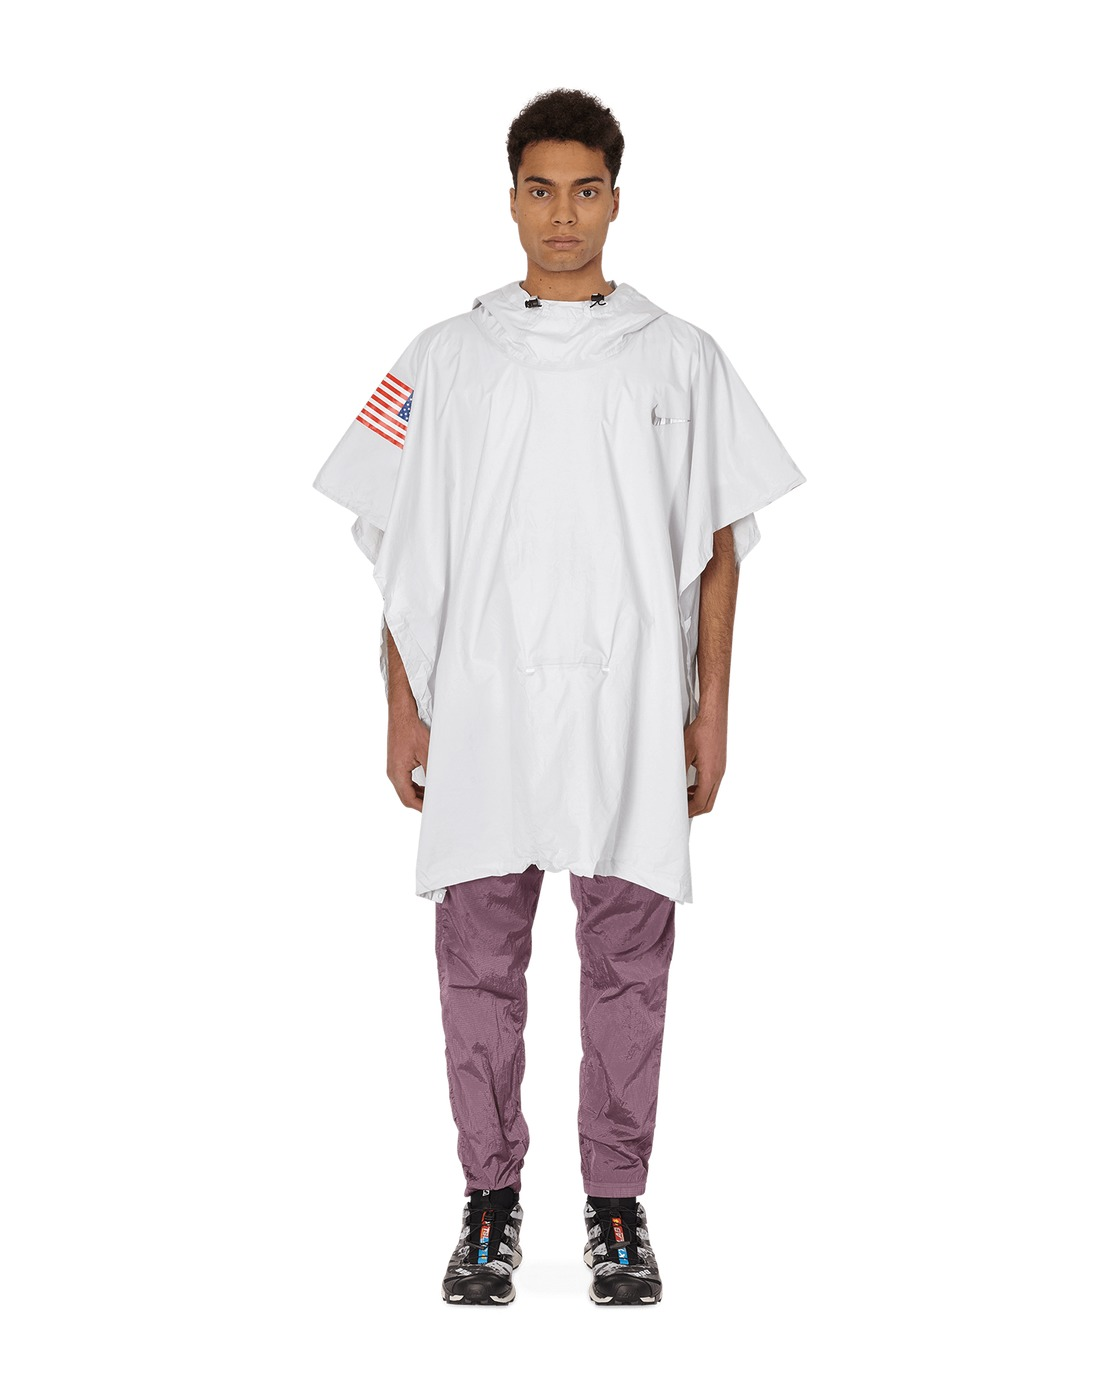 Nike Special Project Tom Sachs Packable Poncho White